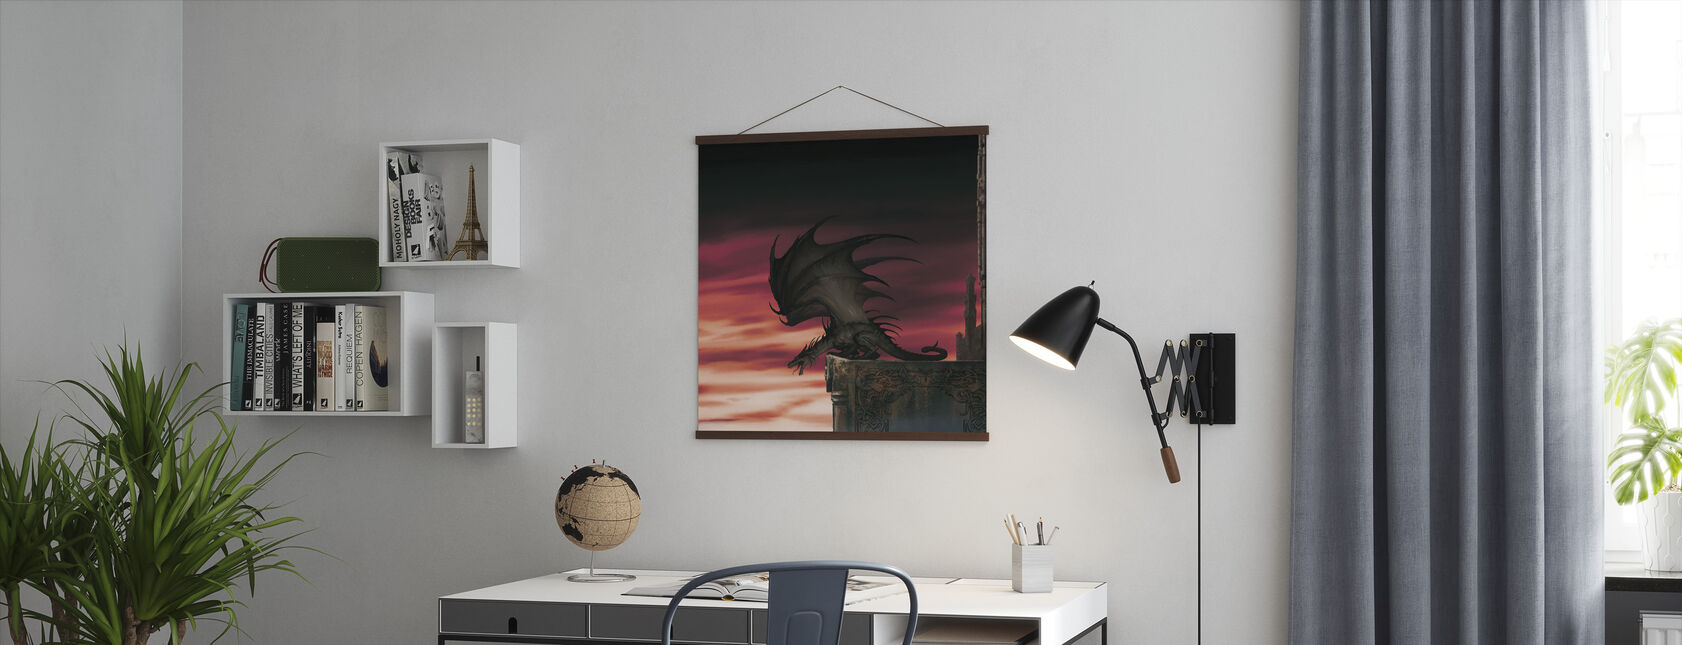 Lord - Poster - Office